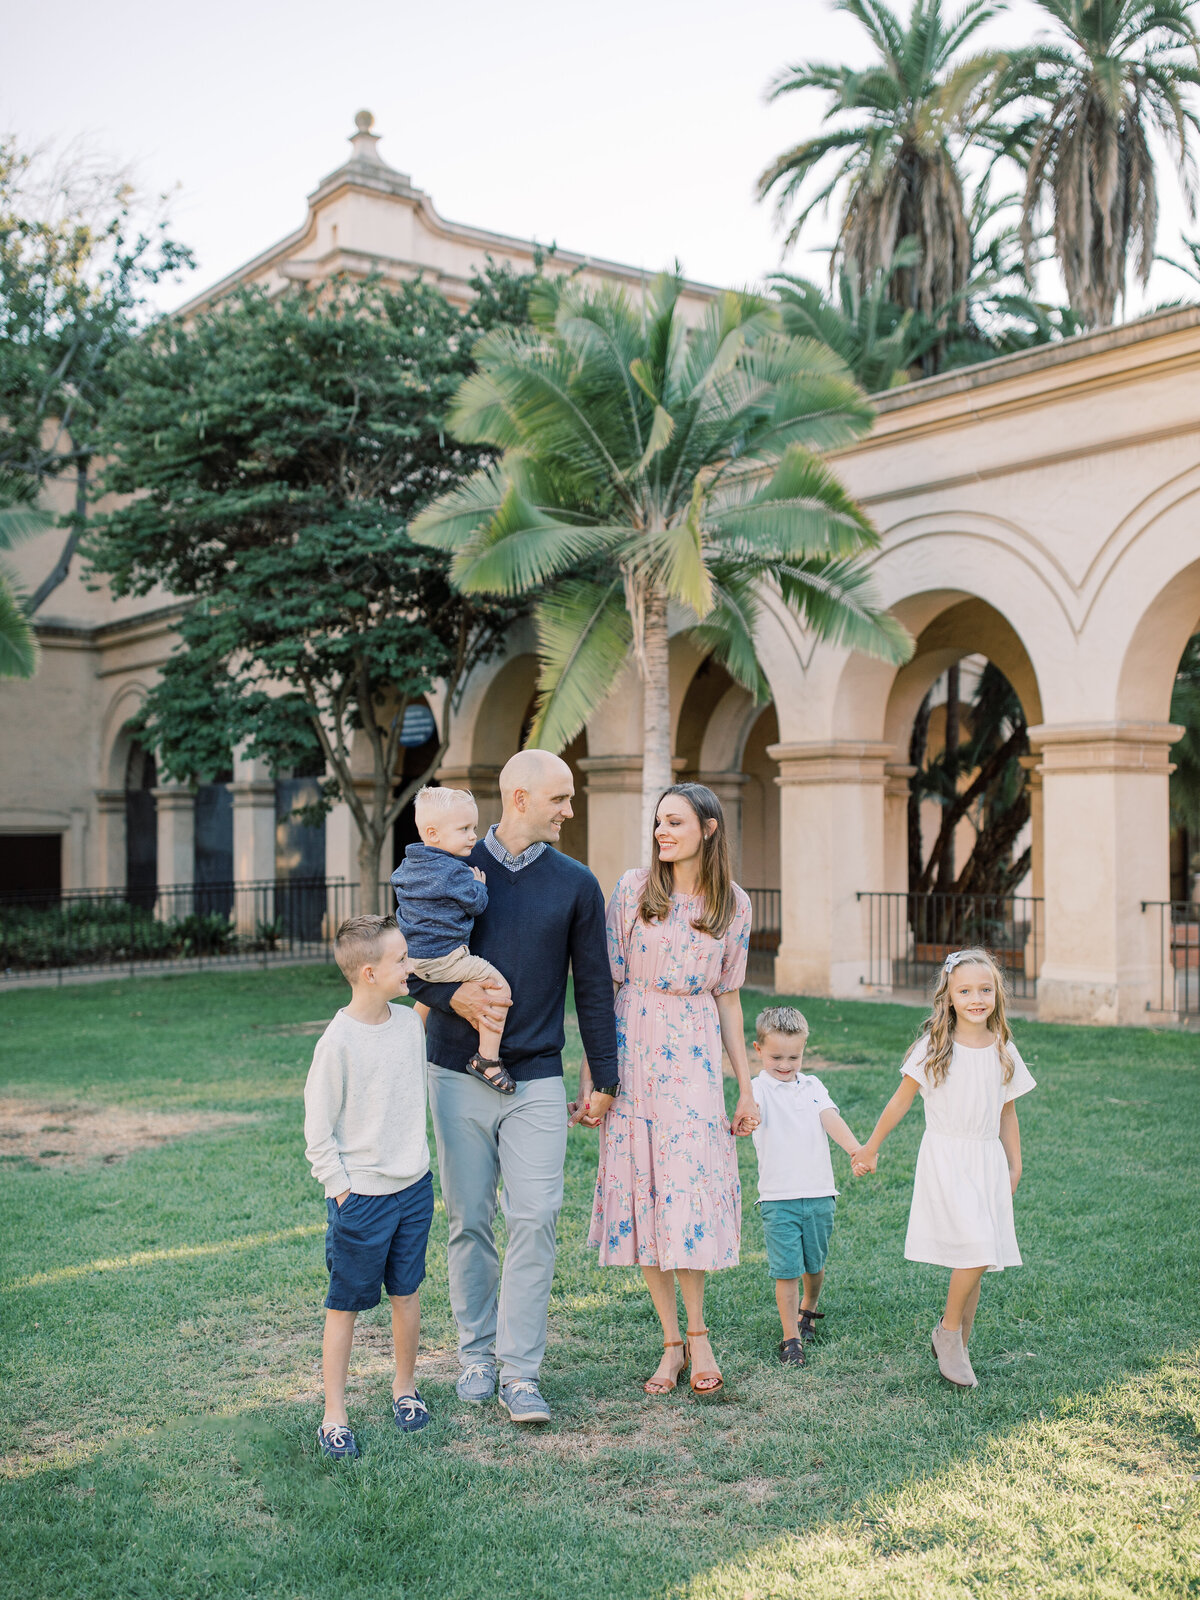 Beaufort Wedding Photographer | Charleston Wedding Photographer | Hilton Head Wedding Photographer | Bluffton Wedding Photographer | Savannah Wedding Photographer | San Luis Obispo Wedding Photographer | Paso Robles Wedding Photographer-9